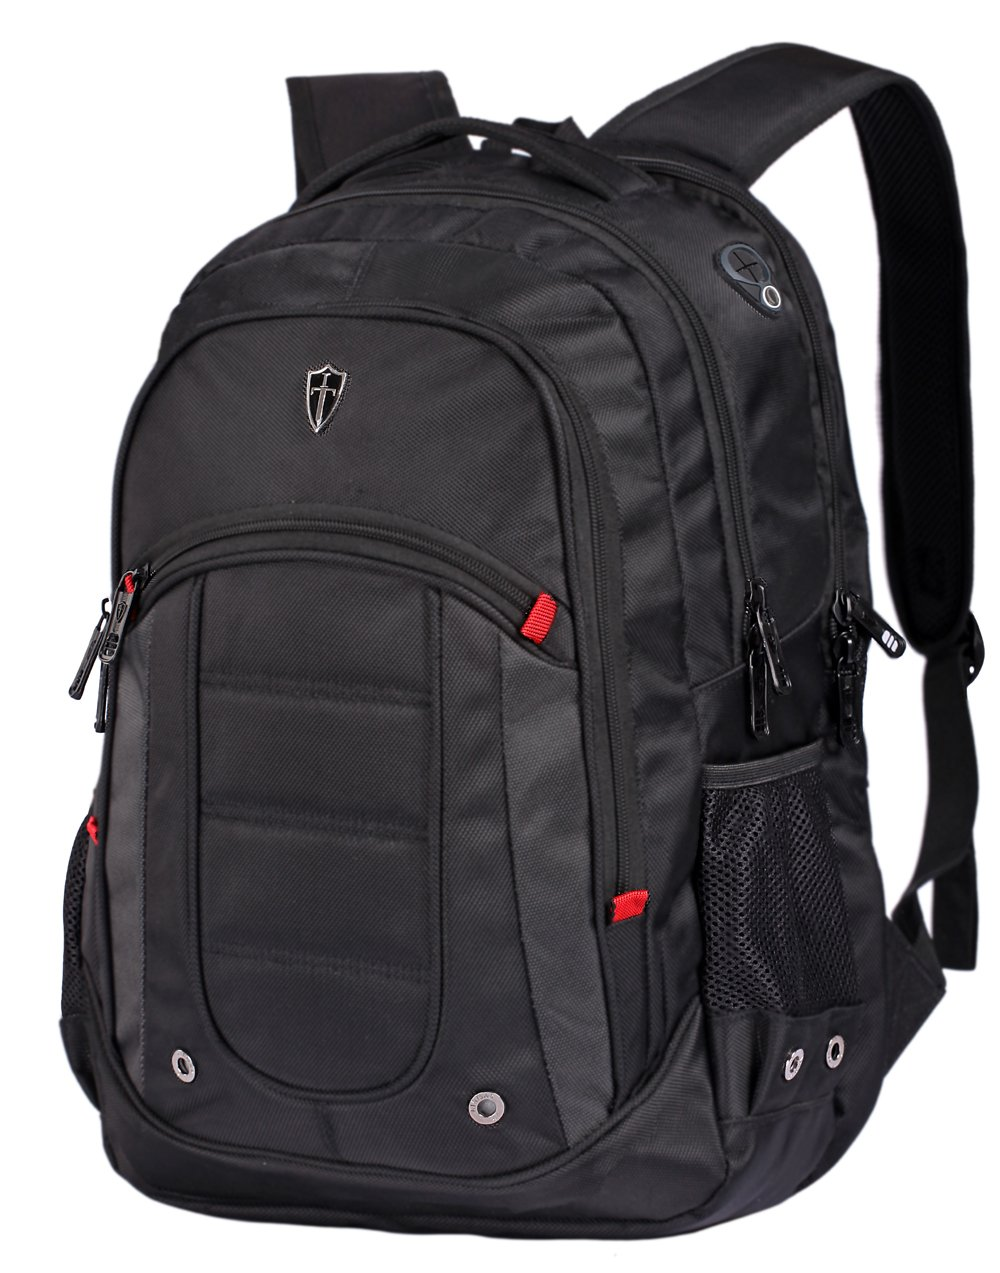 Image result for rucksack extra compartments